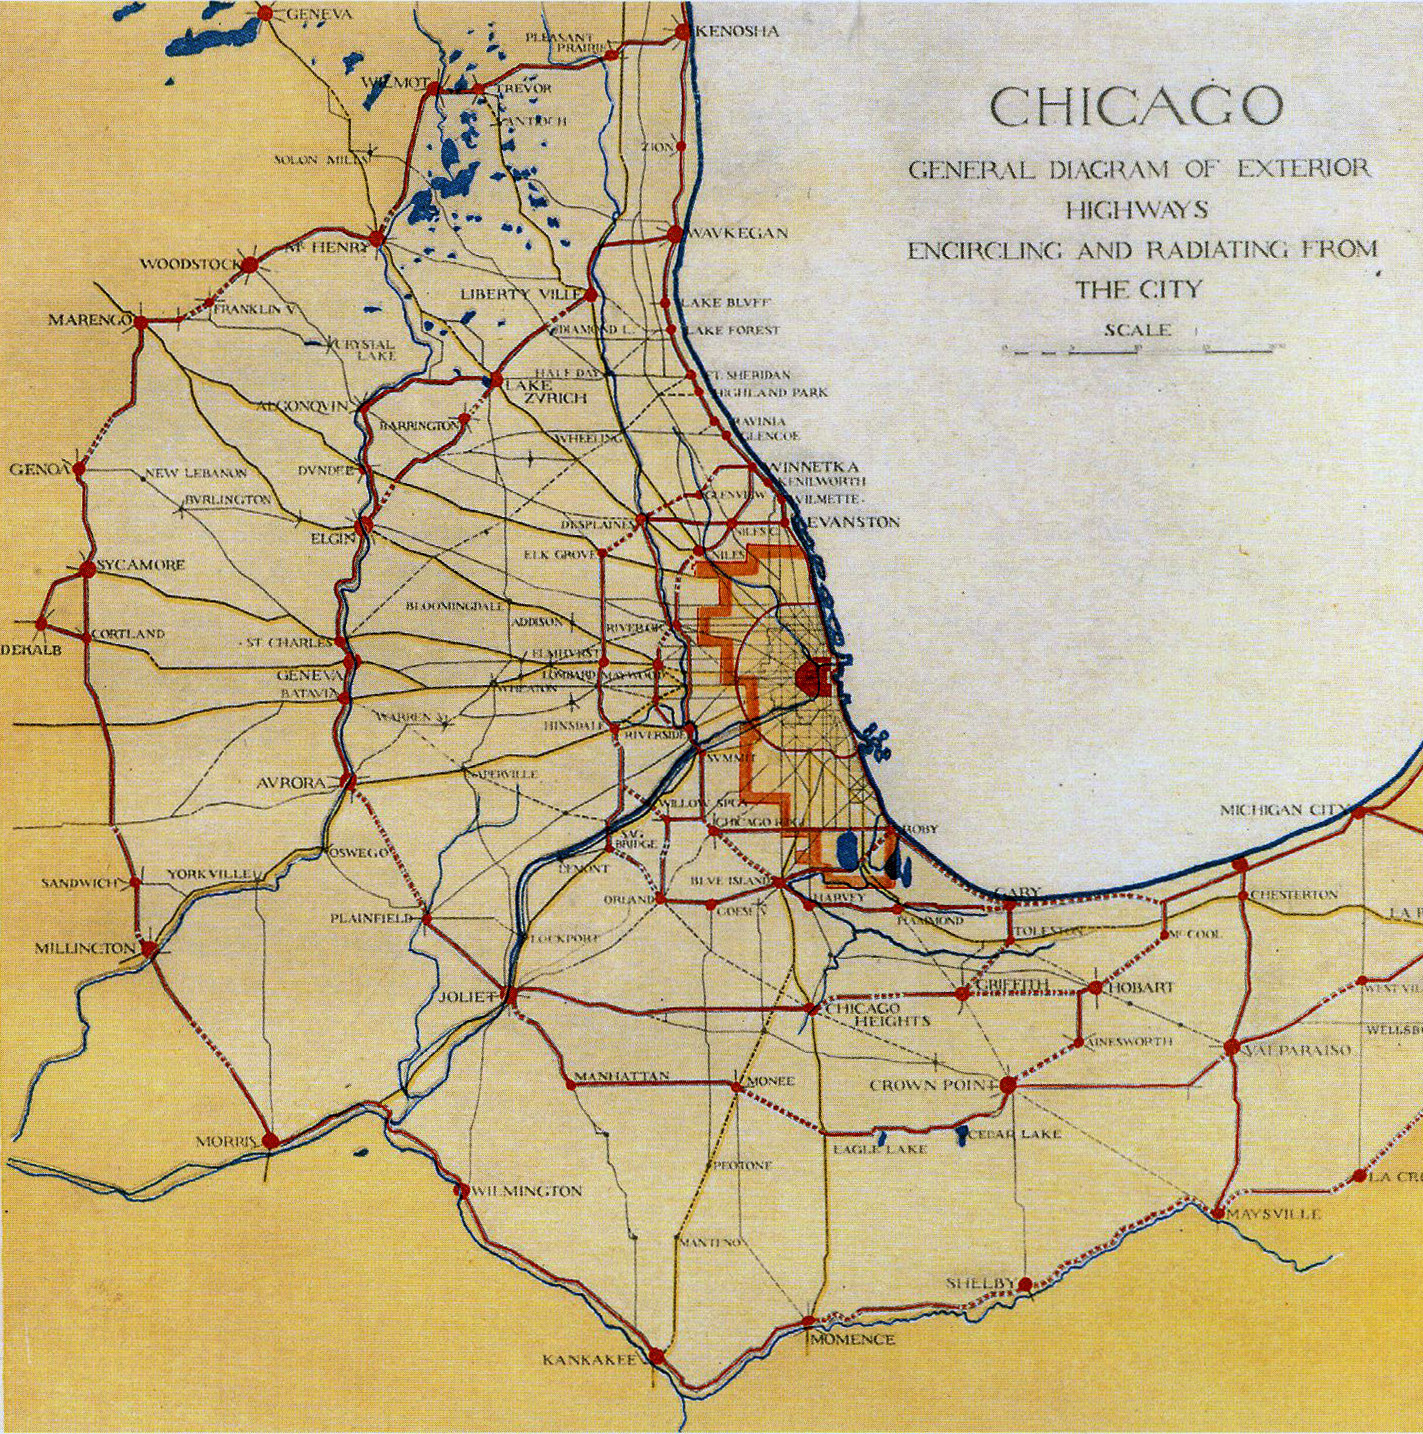 XL: Diagram of Chicago's Radiating and Encircling Regional Thoroughfares